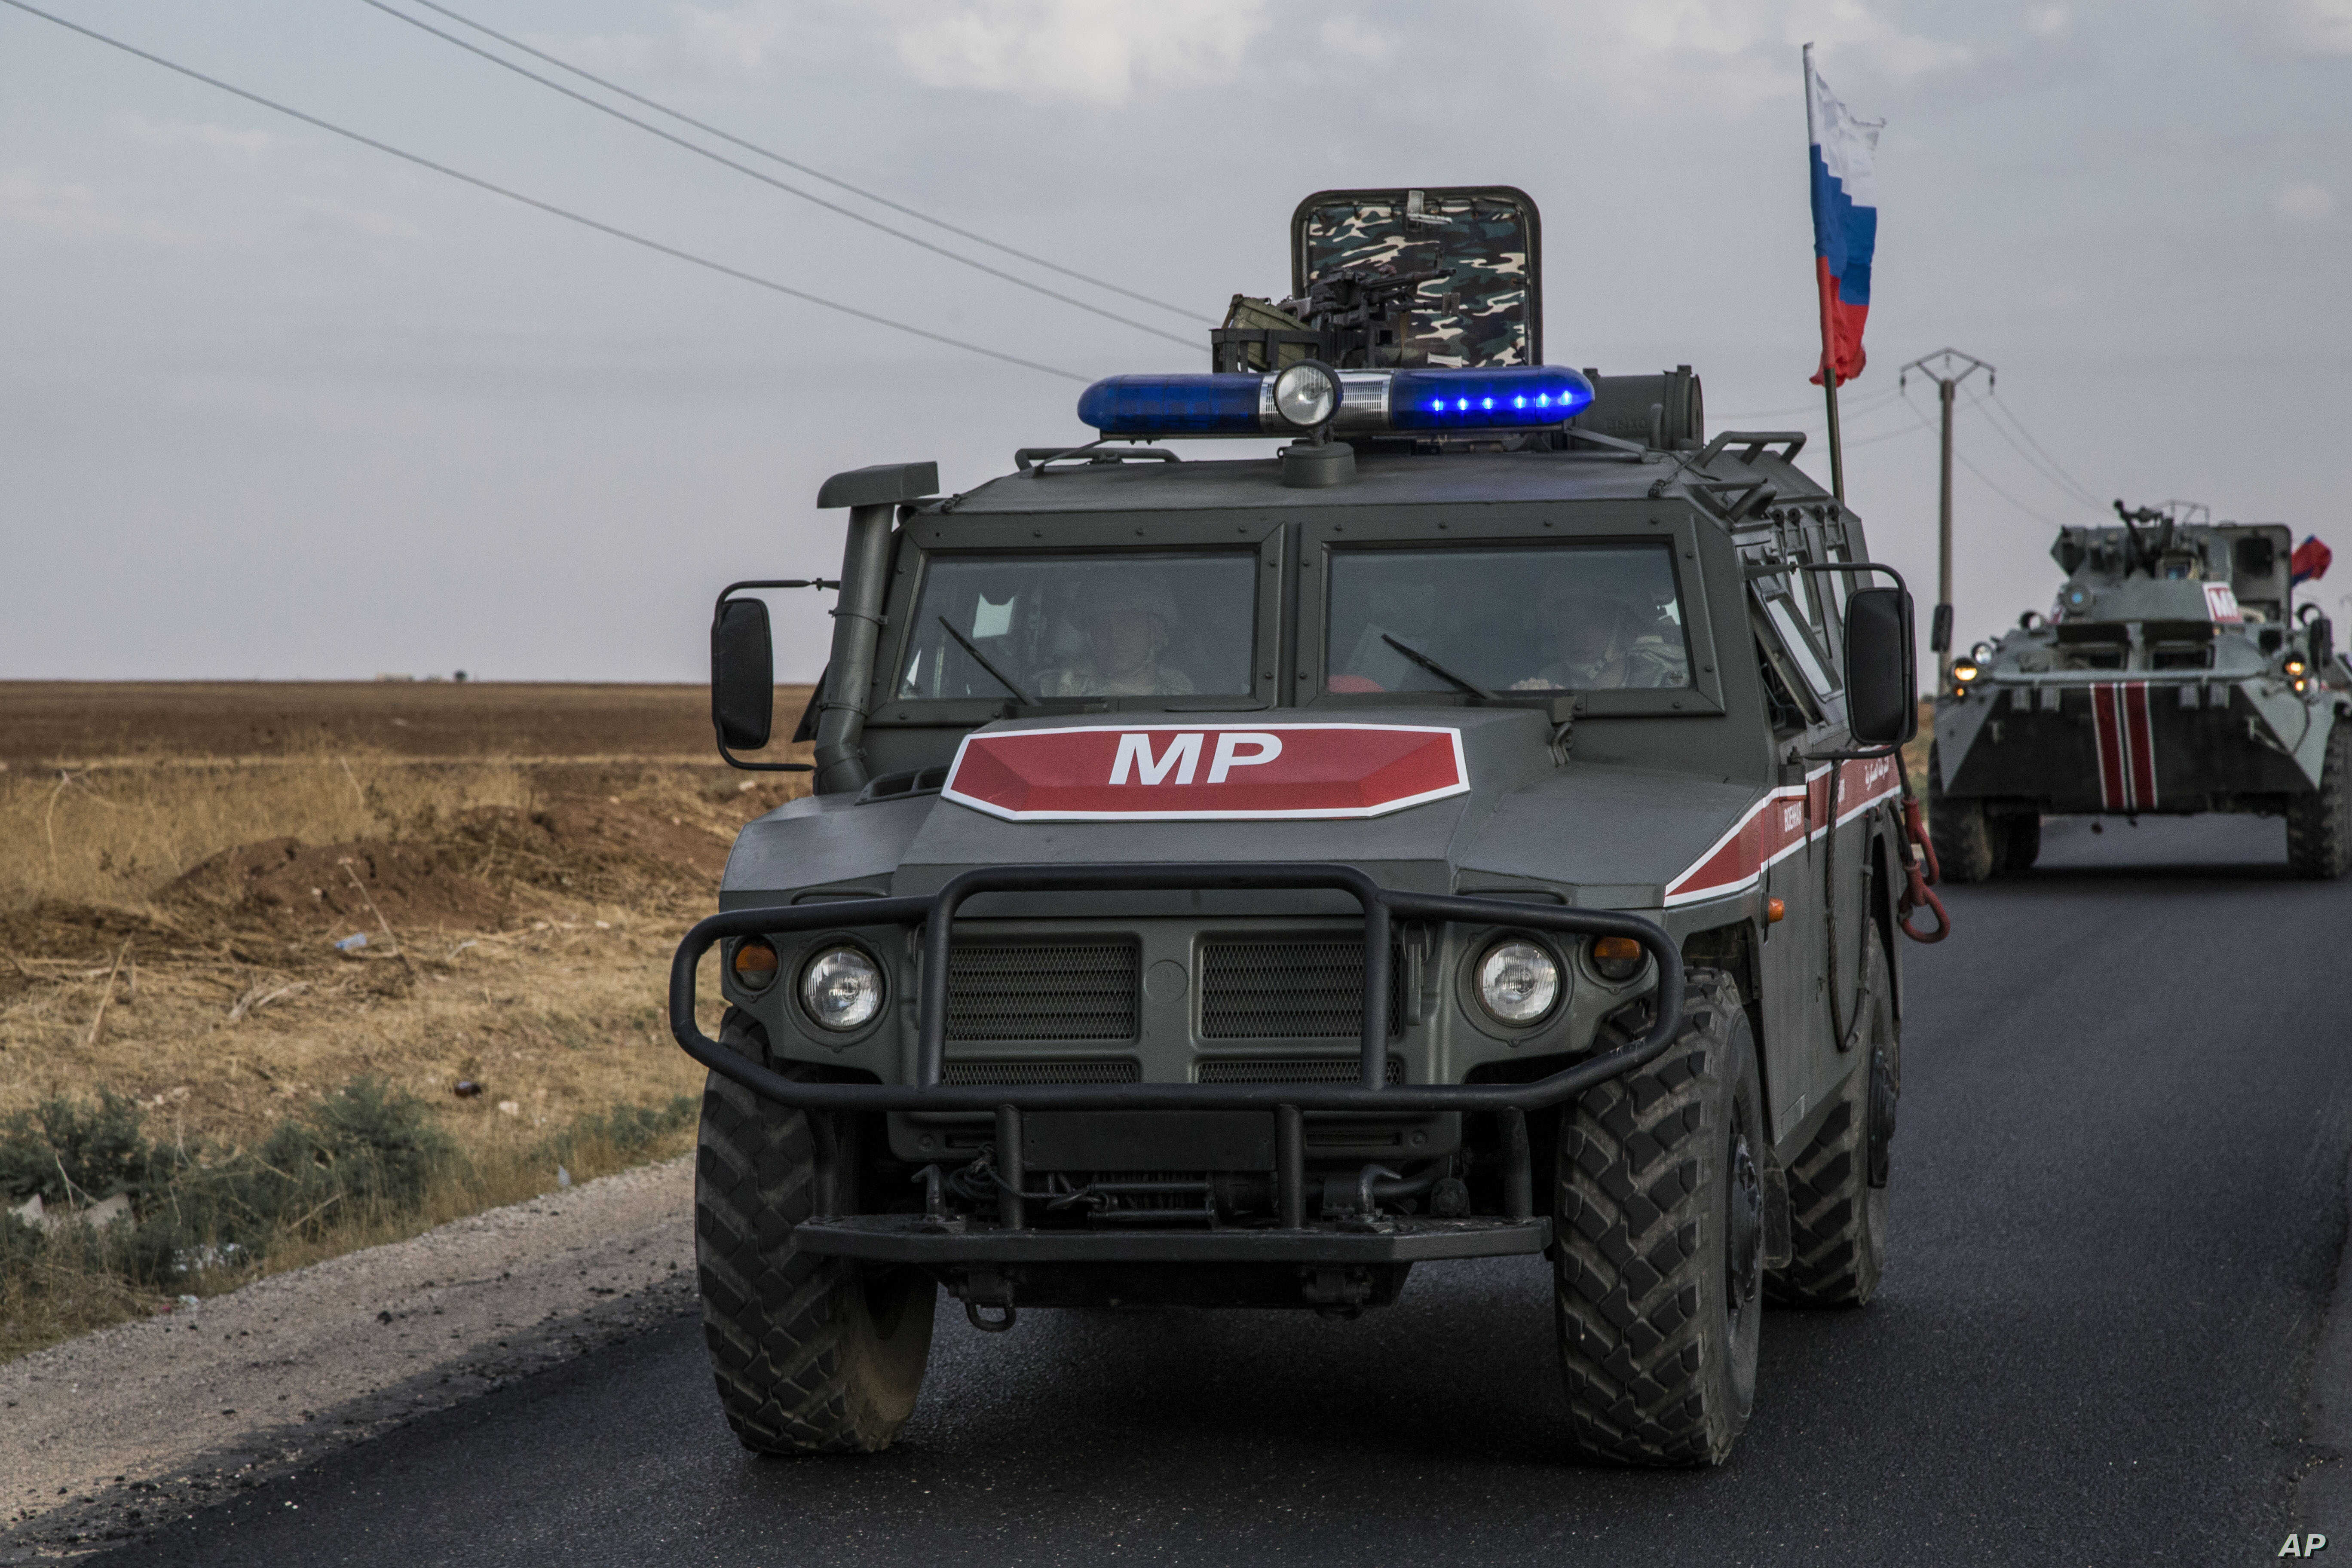 Russian forces patrol near the city of Qamishli north Syria. Russia's Defense